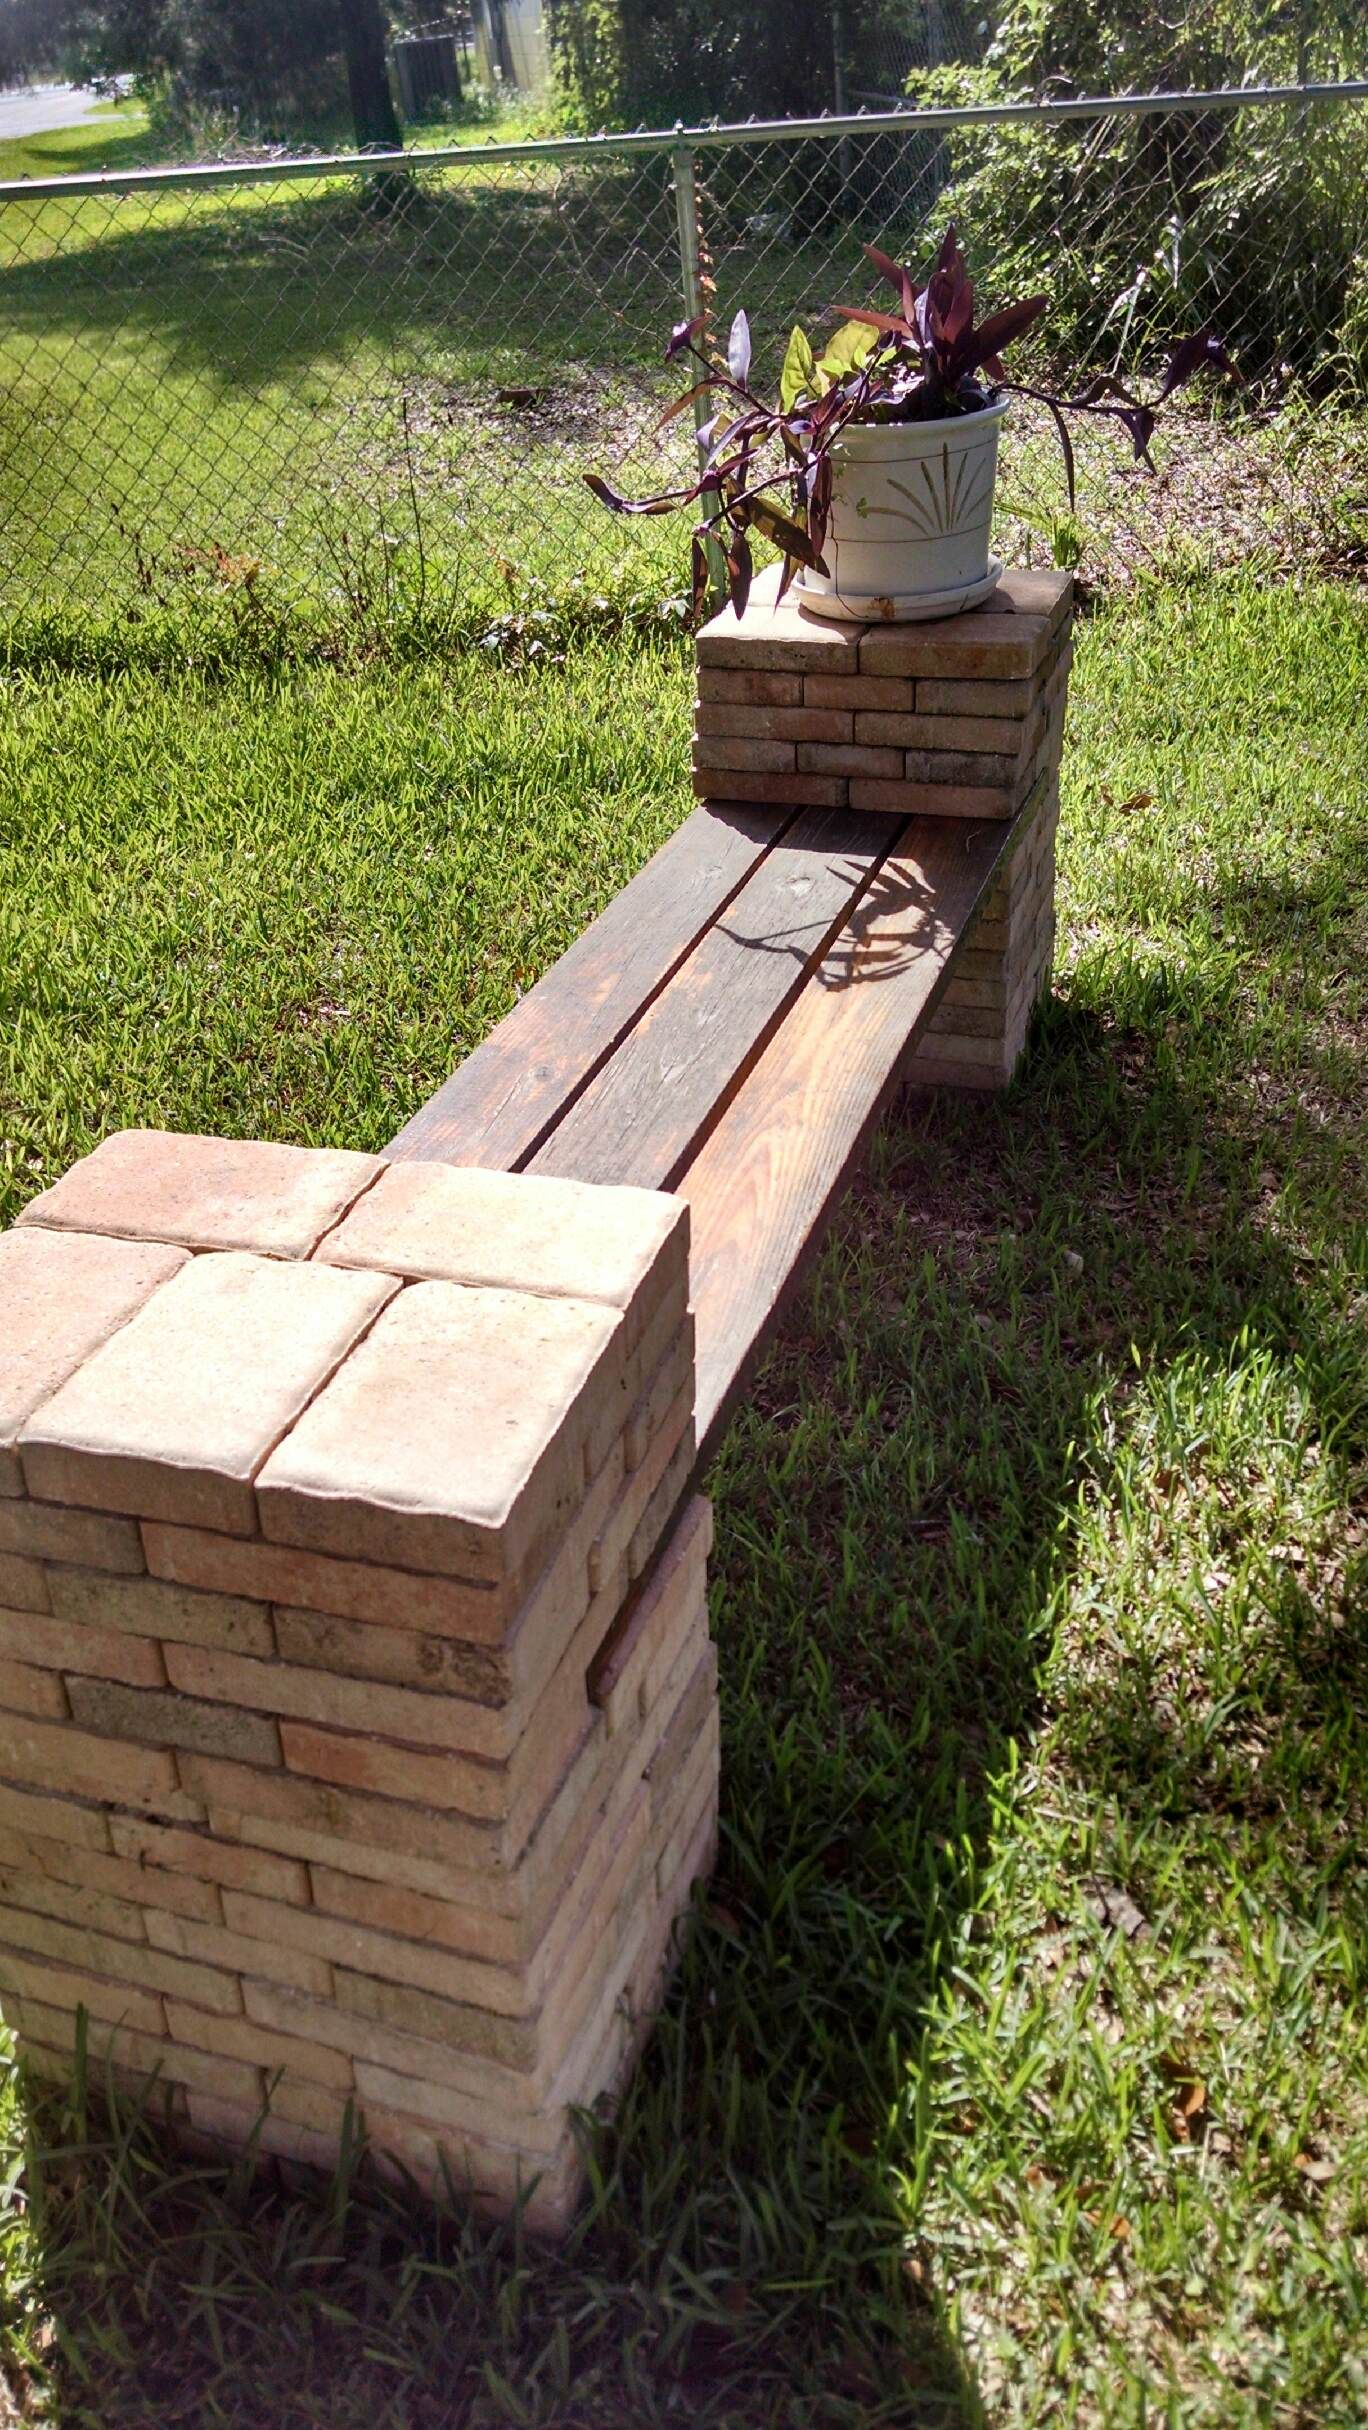 Incredible Make A Diy Stone And Wood Bench Quickly And Easily Gmtry Best Dining Table And Chair Ideas Images Gmtryco